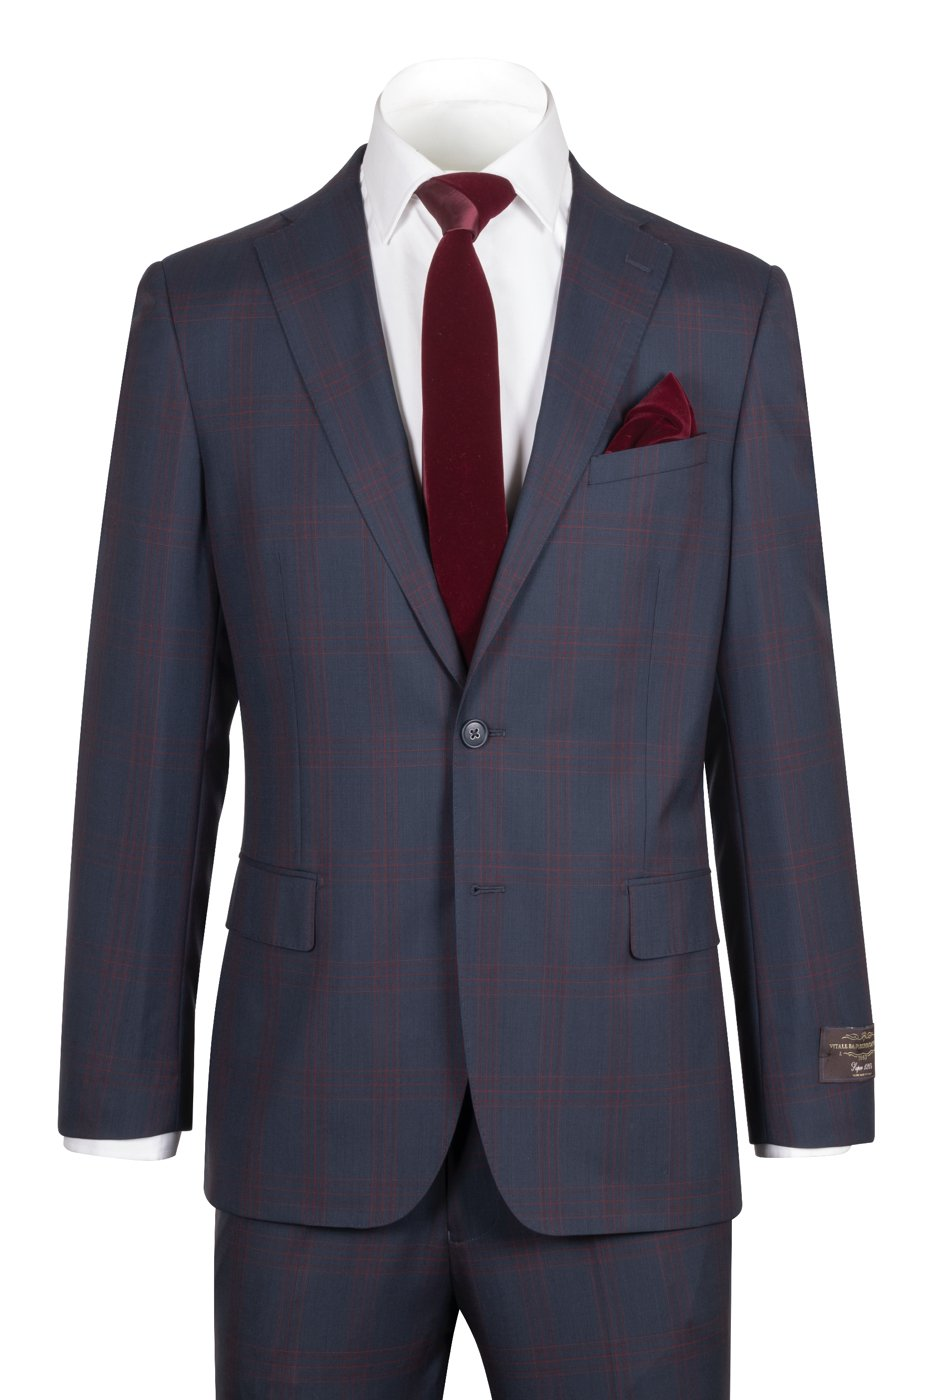 PORTO Slim Fit, Dark Navy with Red windowpane, Pure Wool Suit by VITALE BARBERIS CANONICO Cloth by Canaletto Menswear CN40.9130/2